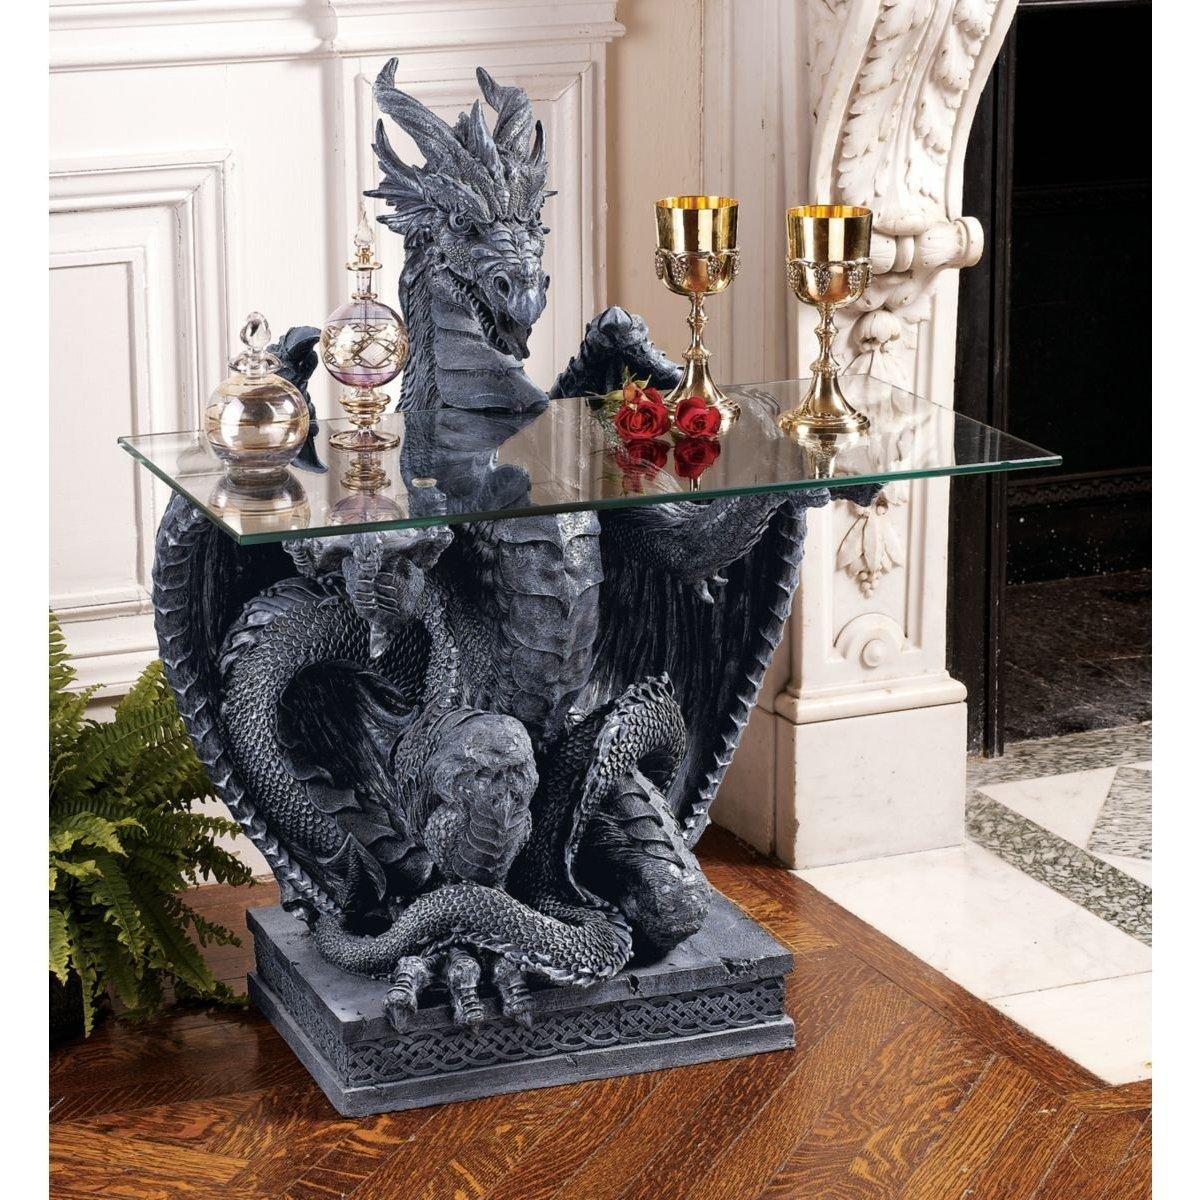 Gargoyle garden statues dragon gargoyles for Gargoyle decor